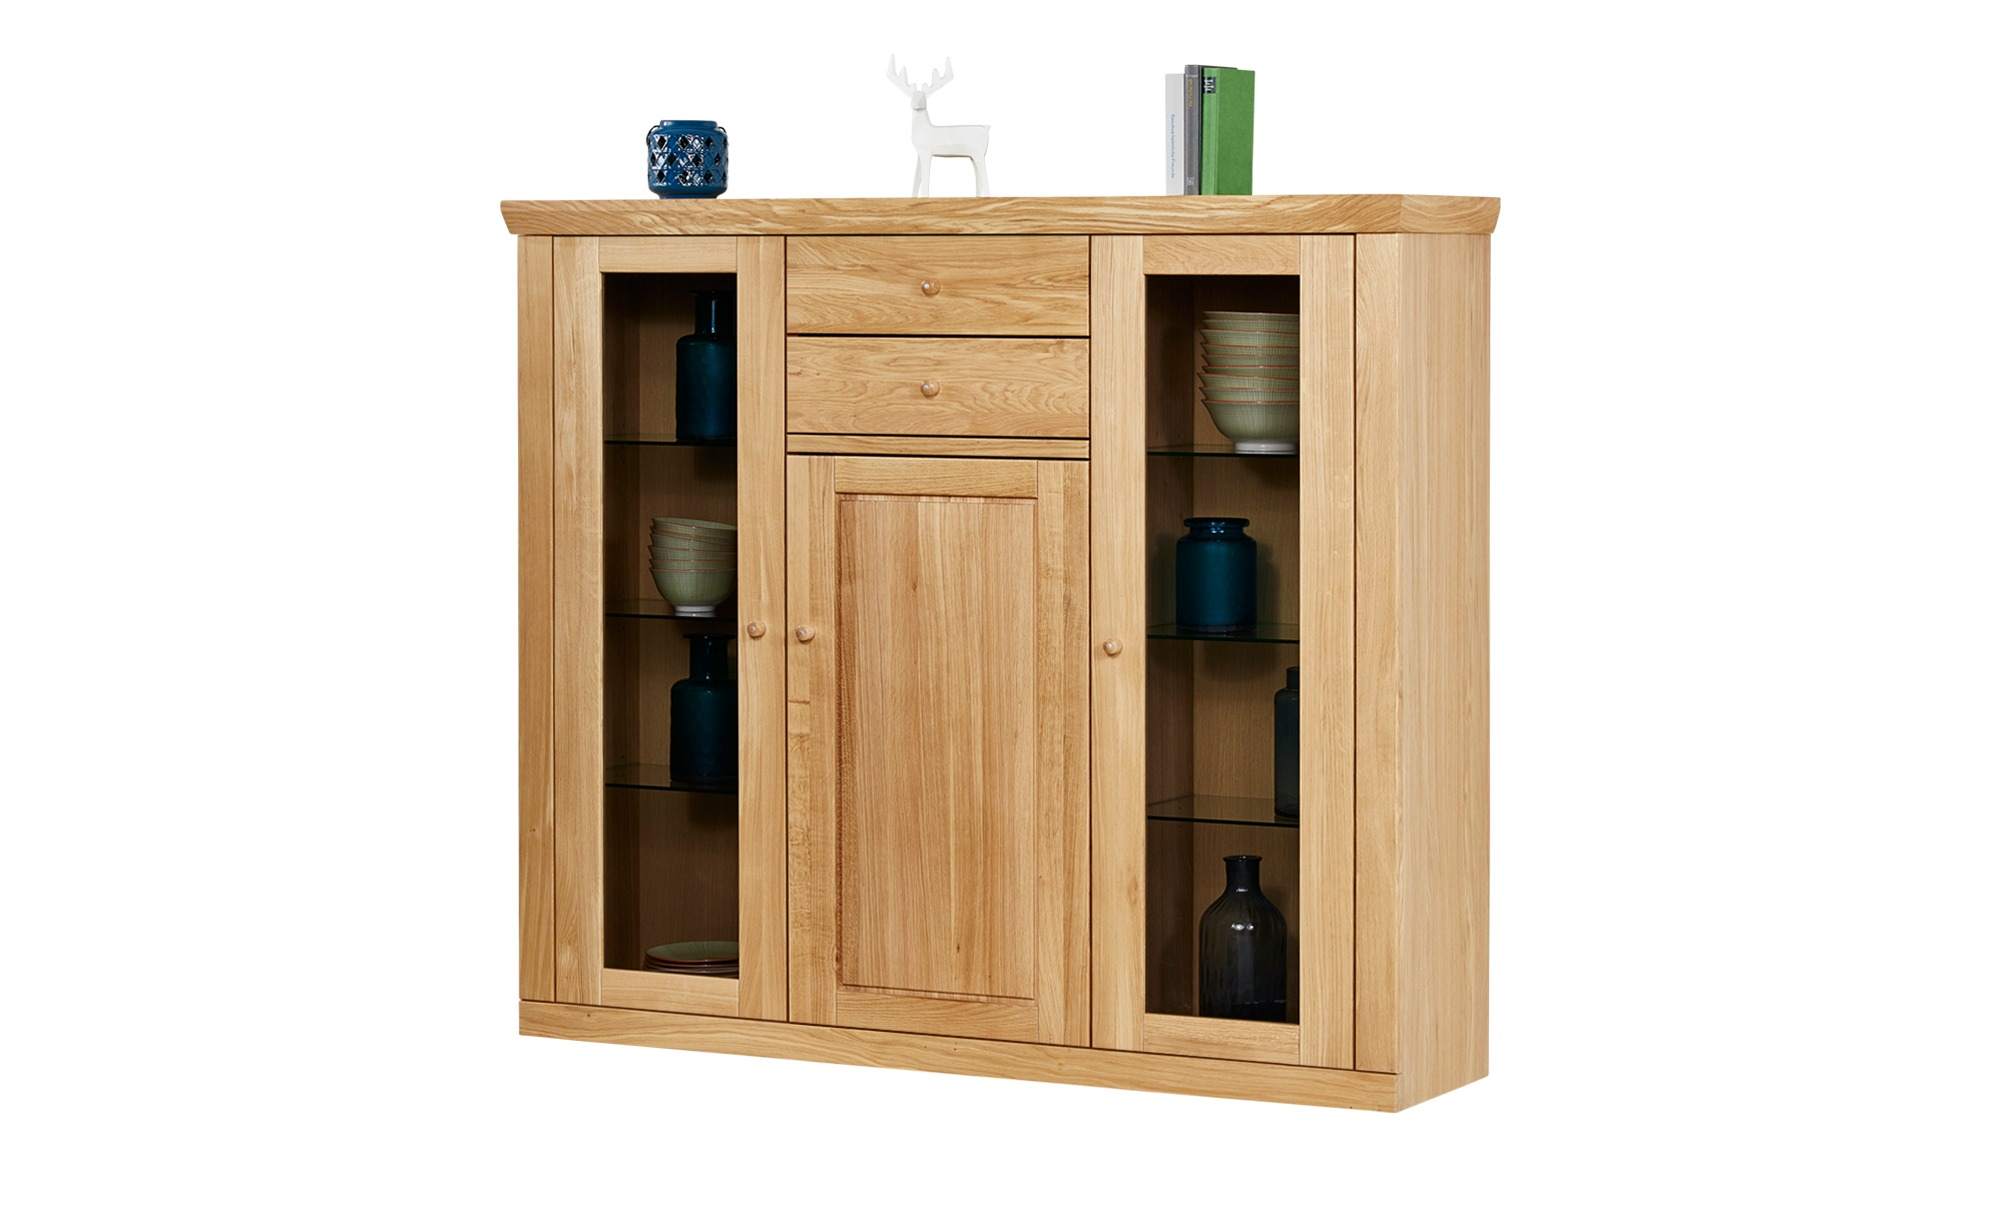 woodford highboard vera breite 163 cm h he 140 cm holzfarben online kaufen bei woonio. Black Bedroom Furniture Sets. Home Design Ideas